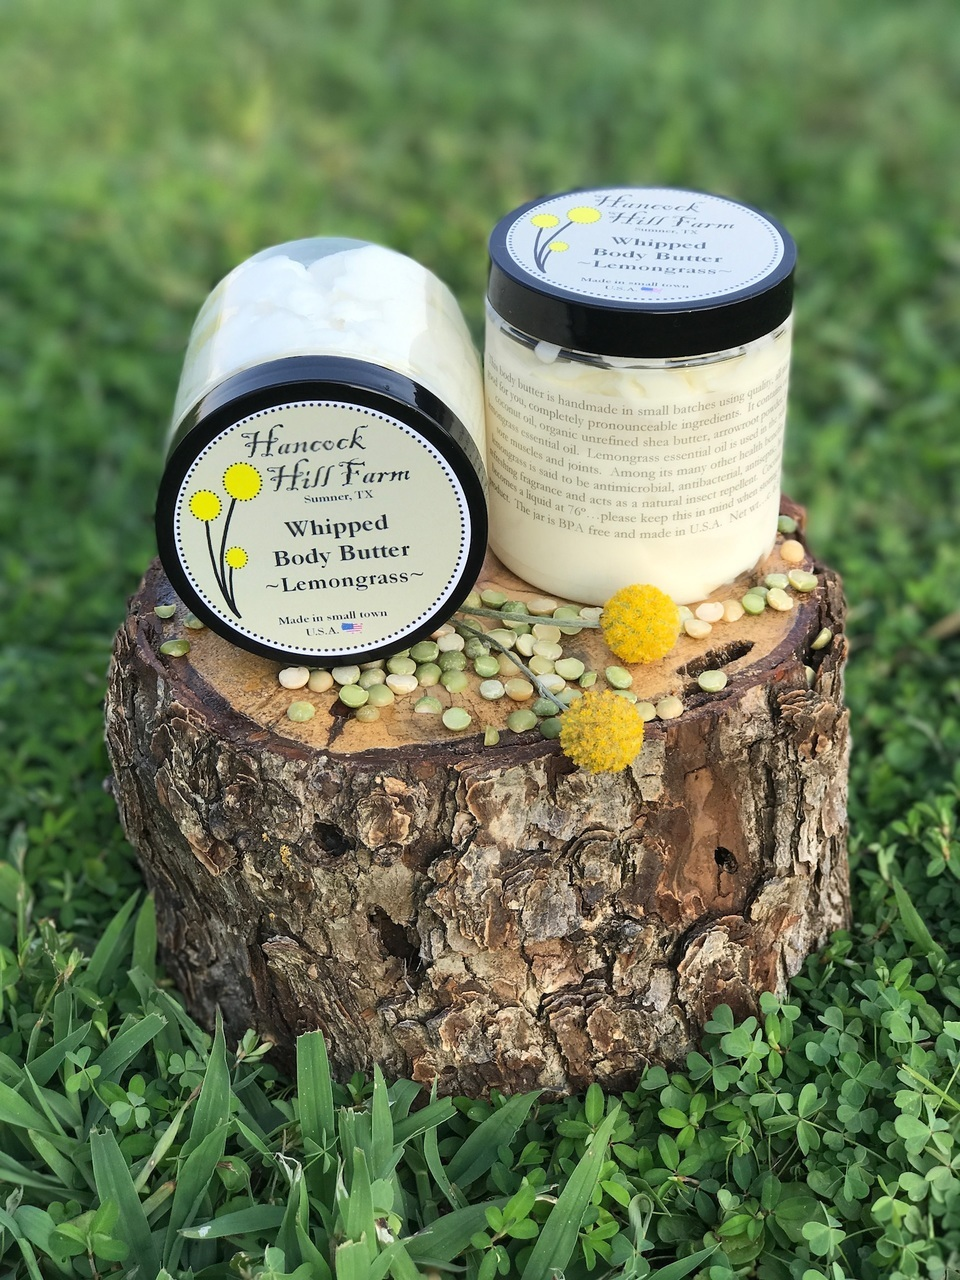 Hancock Hill Farm , Sumner: Essential Oil Blends, Beard Oils, Soaps, and Body Scrubs